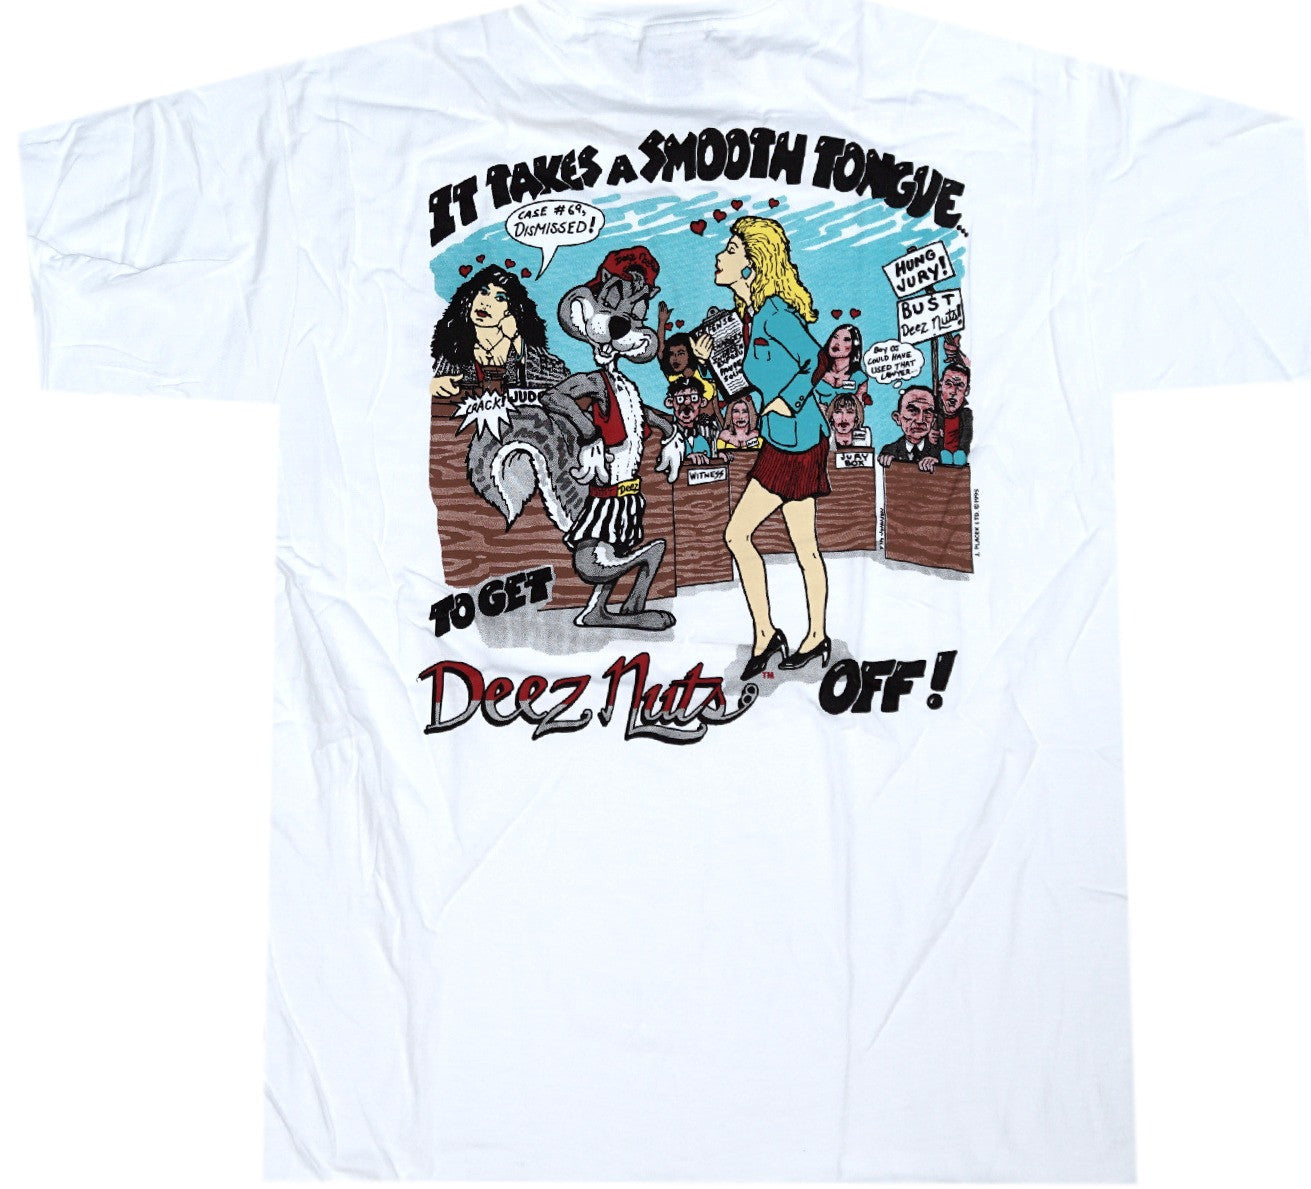 Deez Nuts Vintage 90's Shirt - And Still